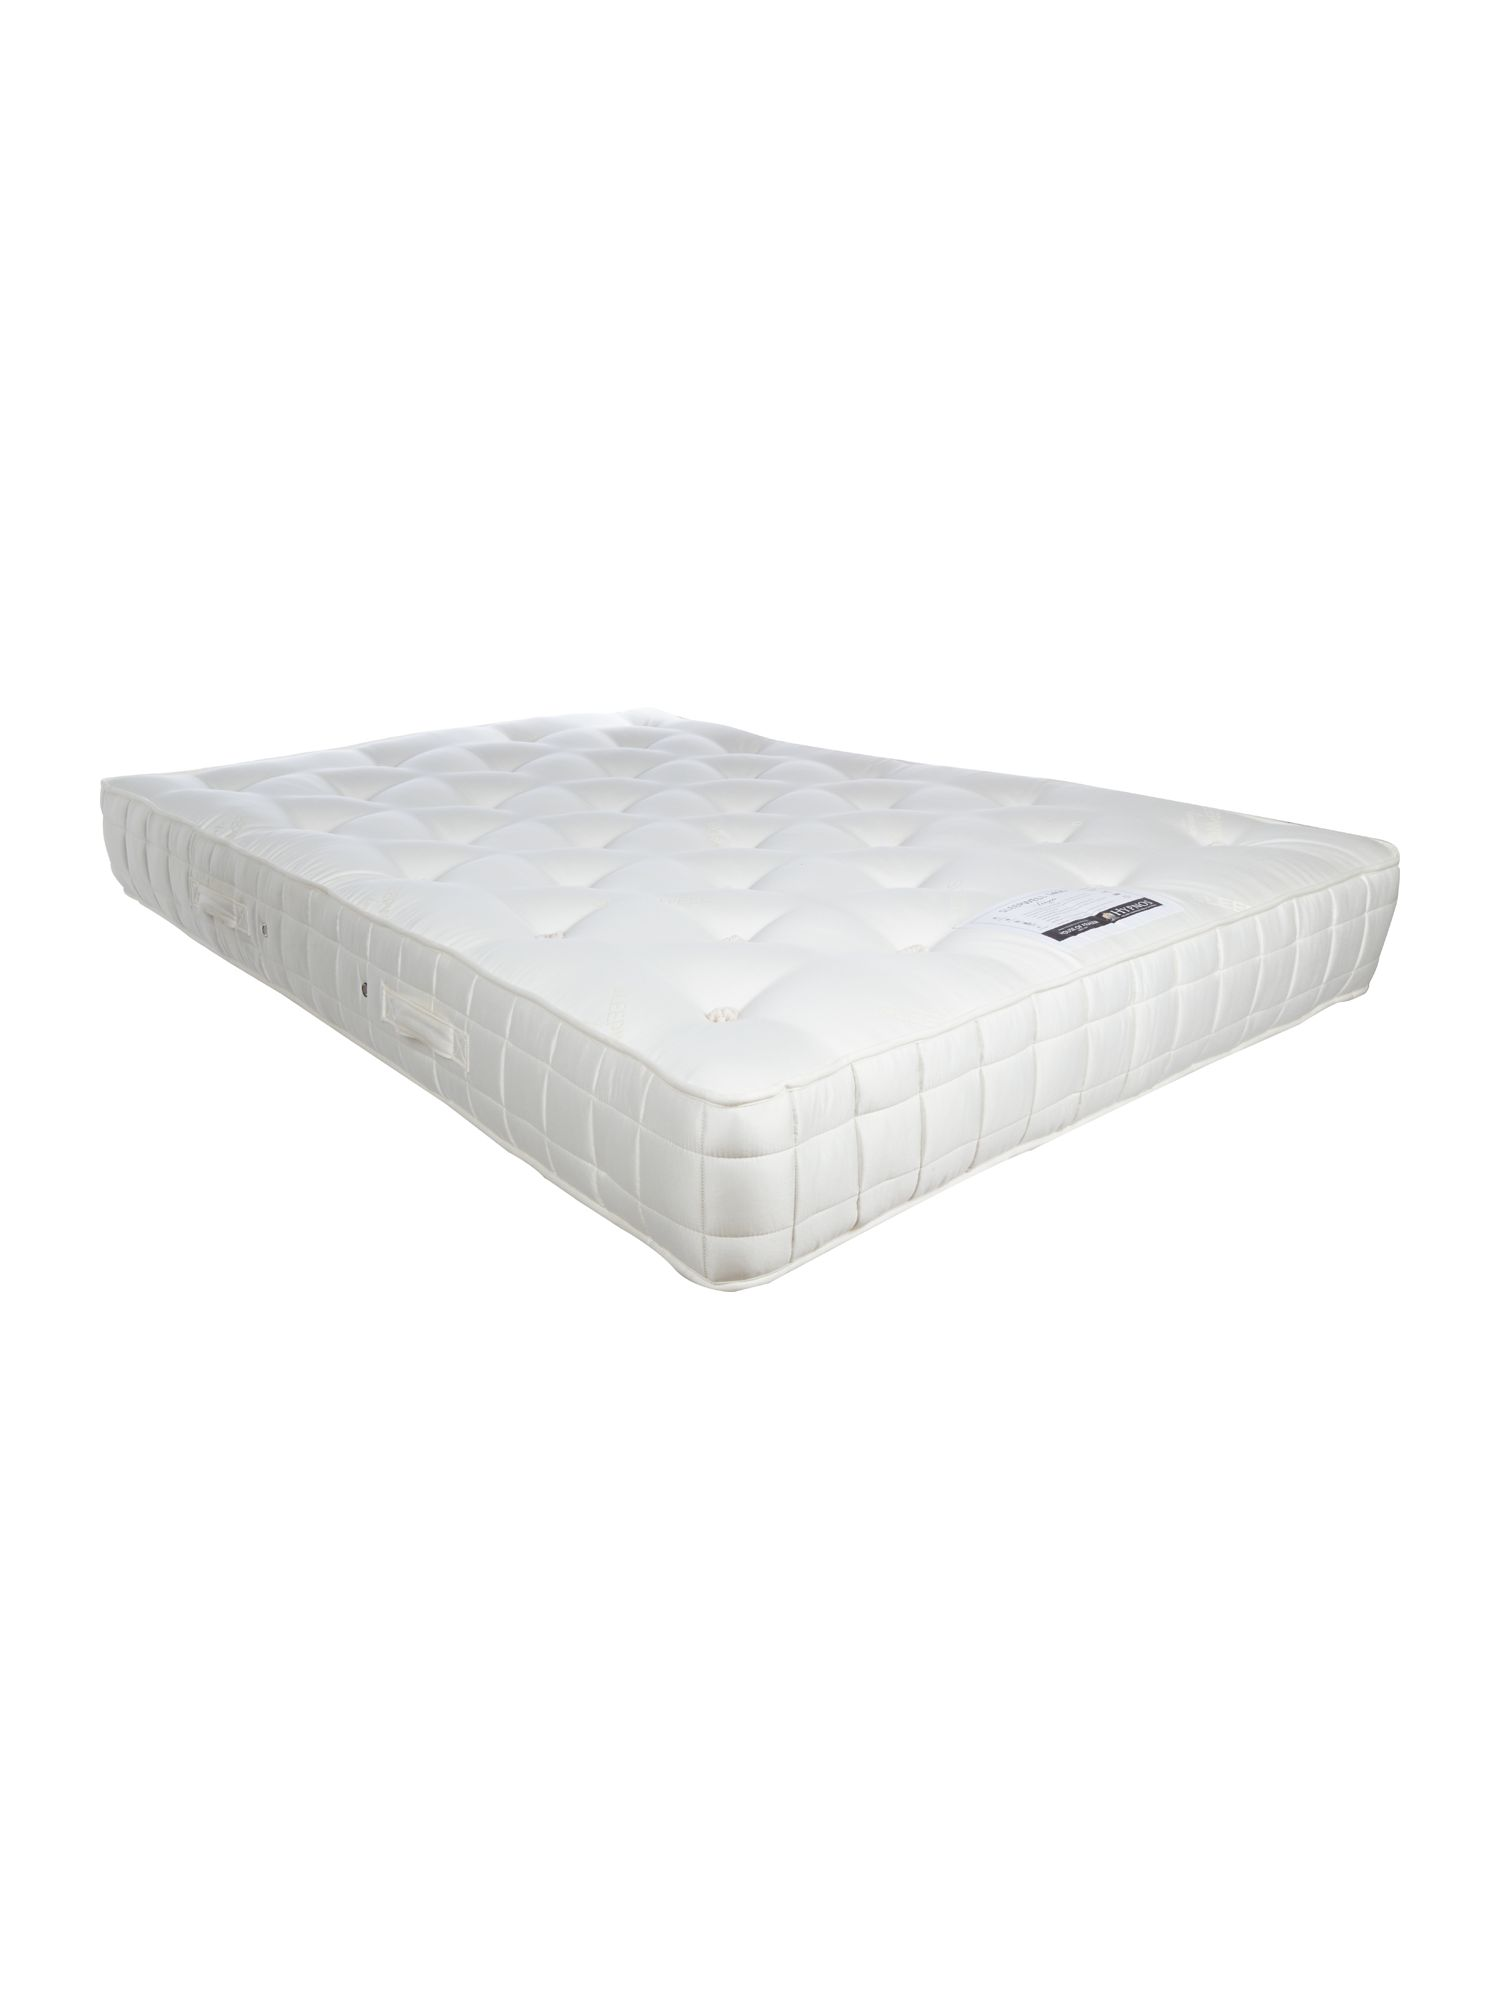 LINEA Home by Hypnos Sleepwell 1400 double mattress medium tension White